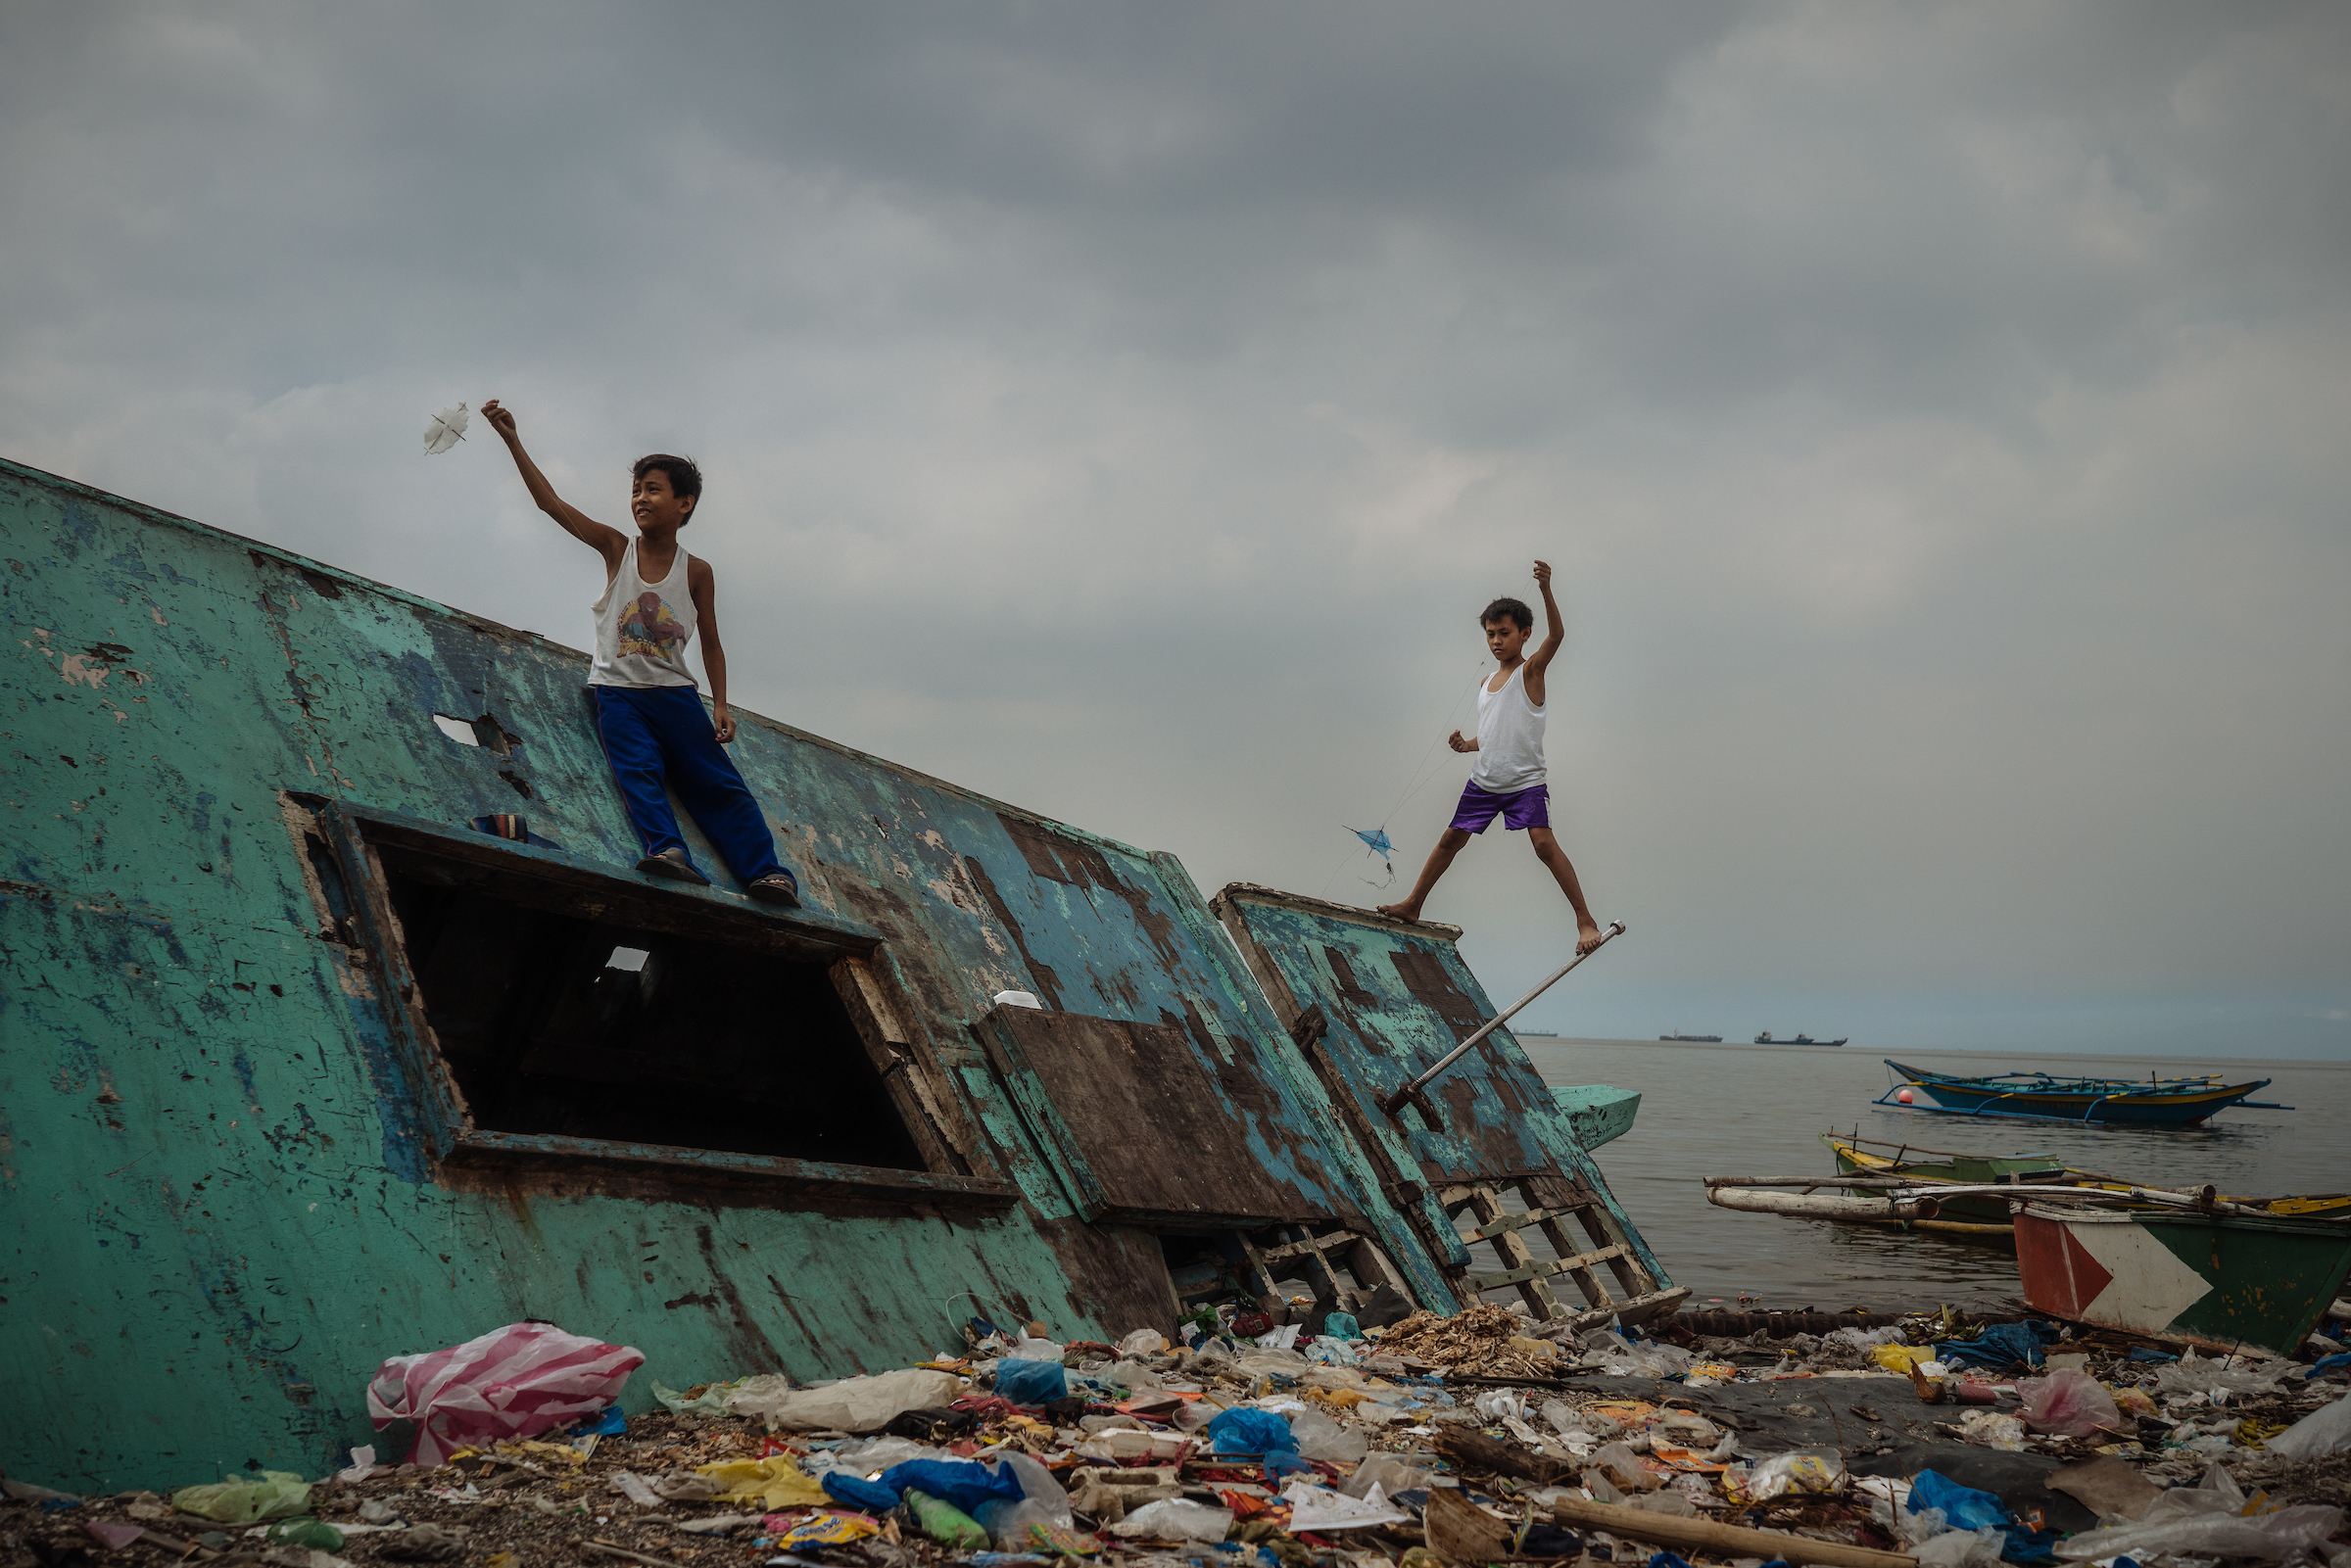 Young boys fly kites on an abandoned boat near one of Manila's slums - one of the densest places on earth, and the backdrop of Rodrigo Duterte's War on Drugs. Amidst all the adversity, life goes on for the residents who call this place home.